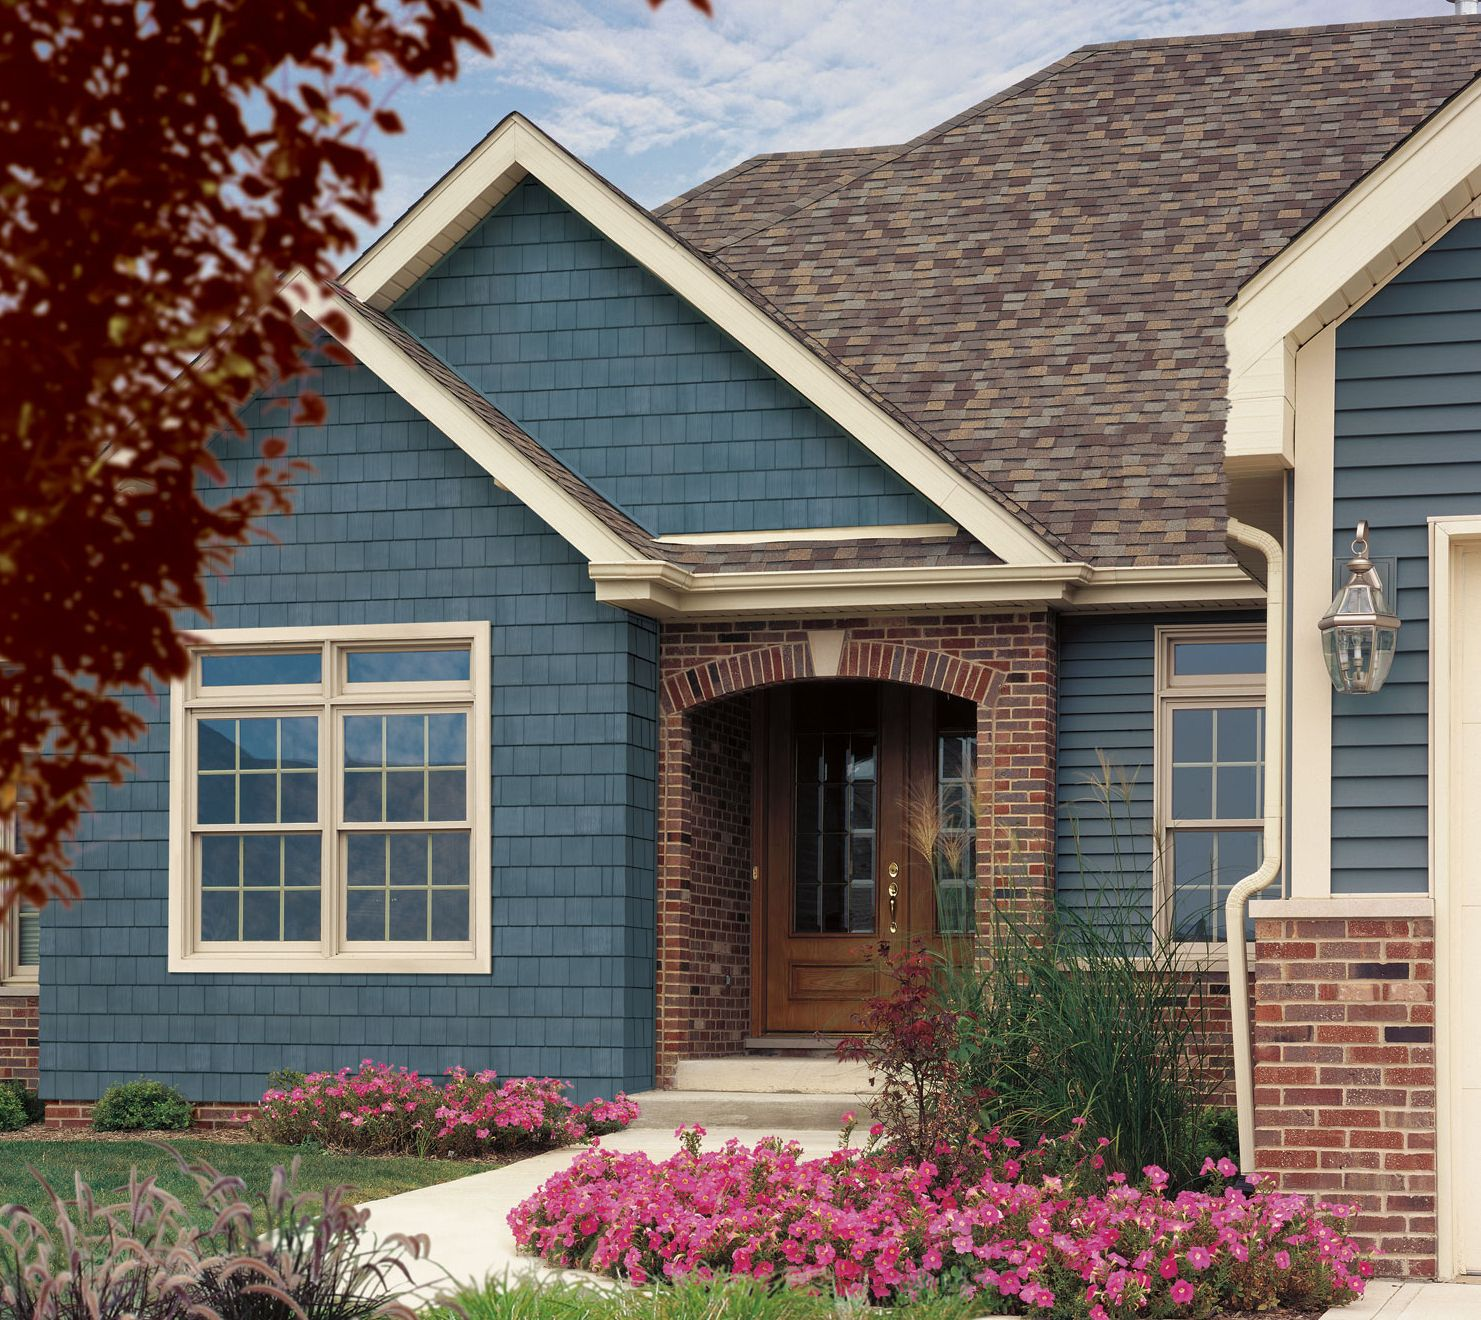 Best Teal Siding This Is The New Color I Want For My Siding 400 x 300